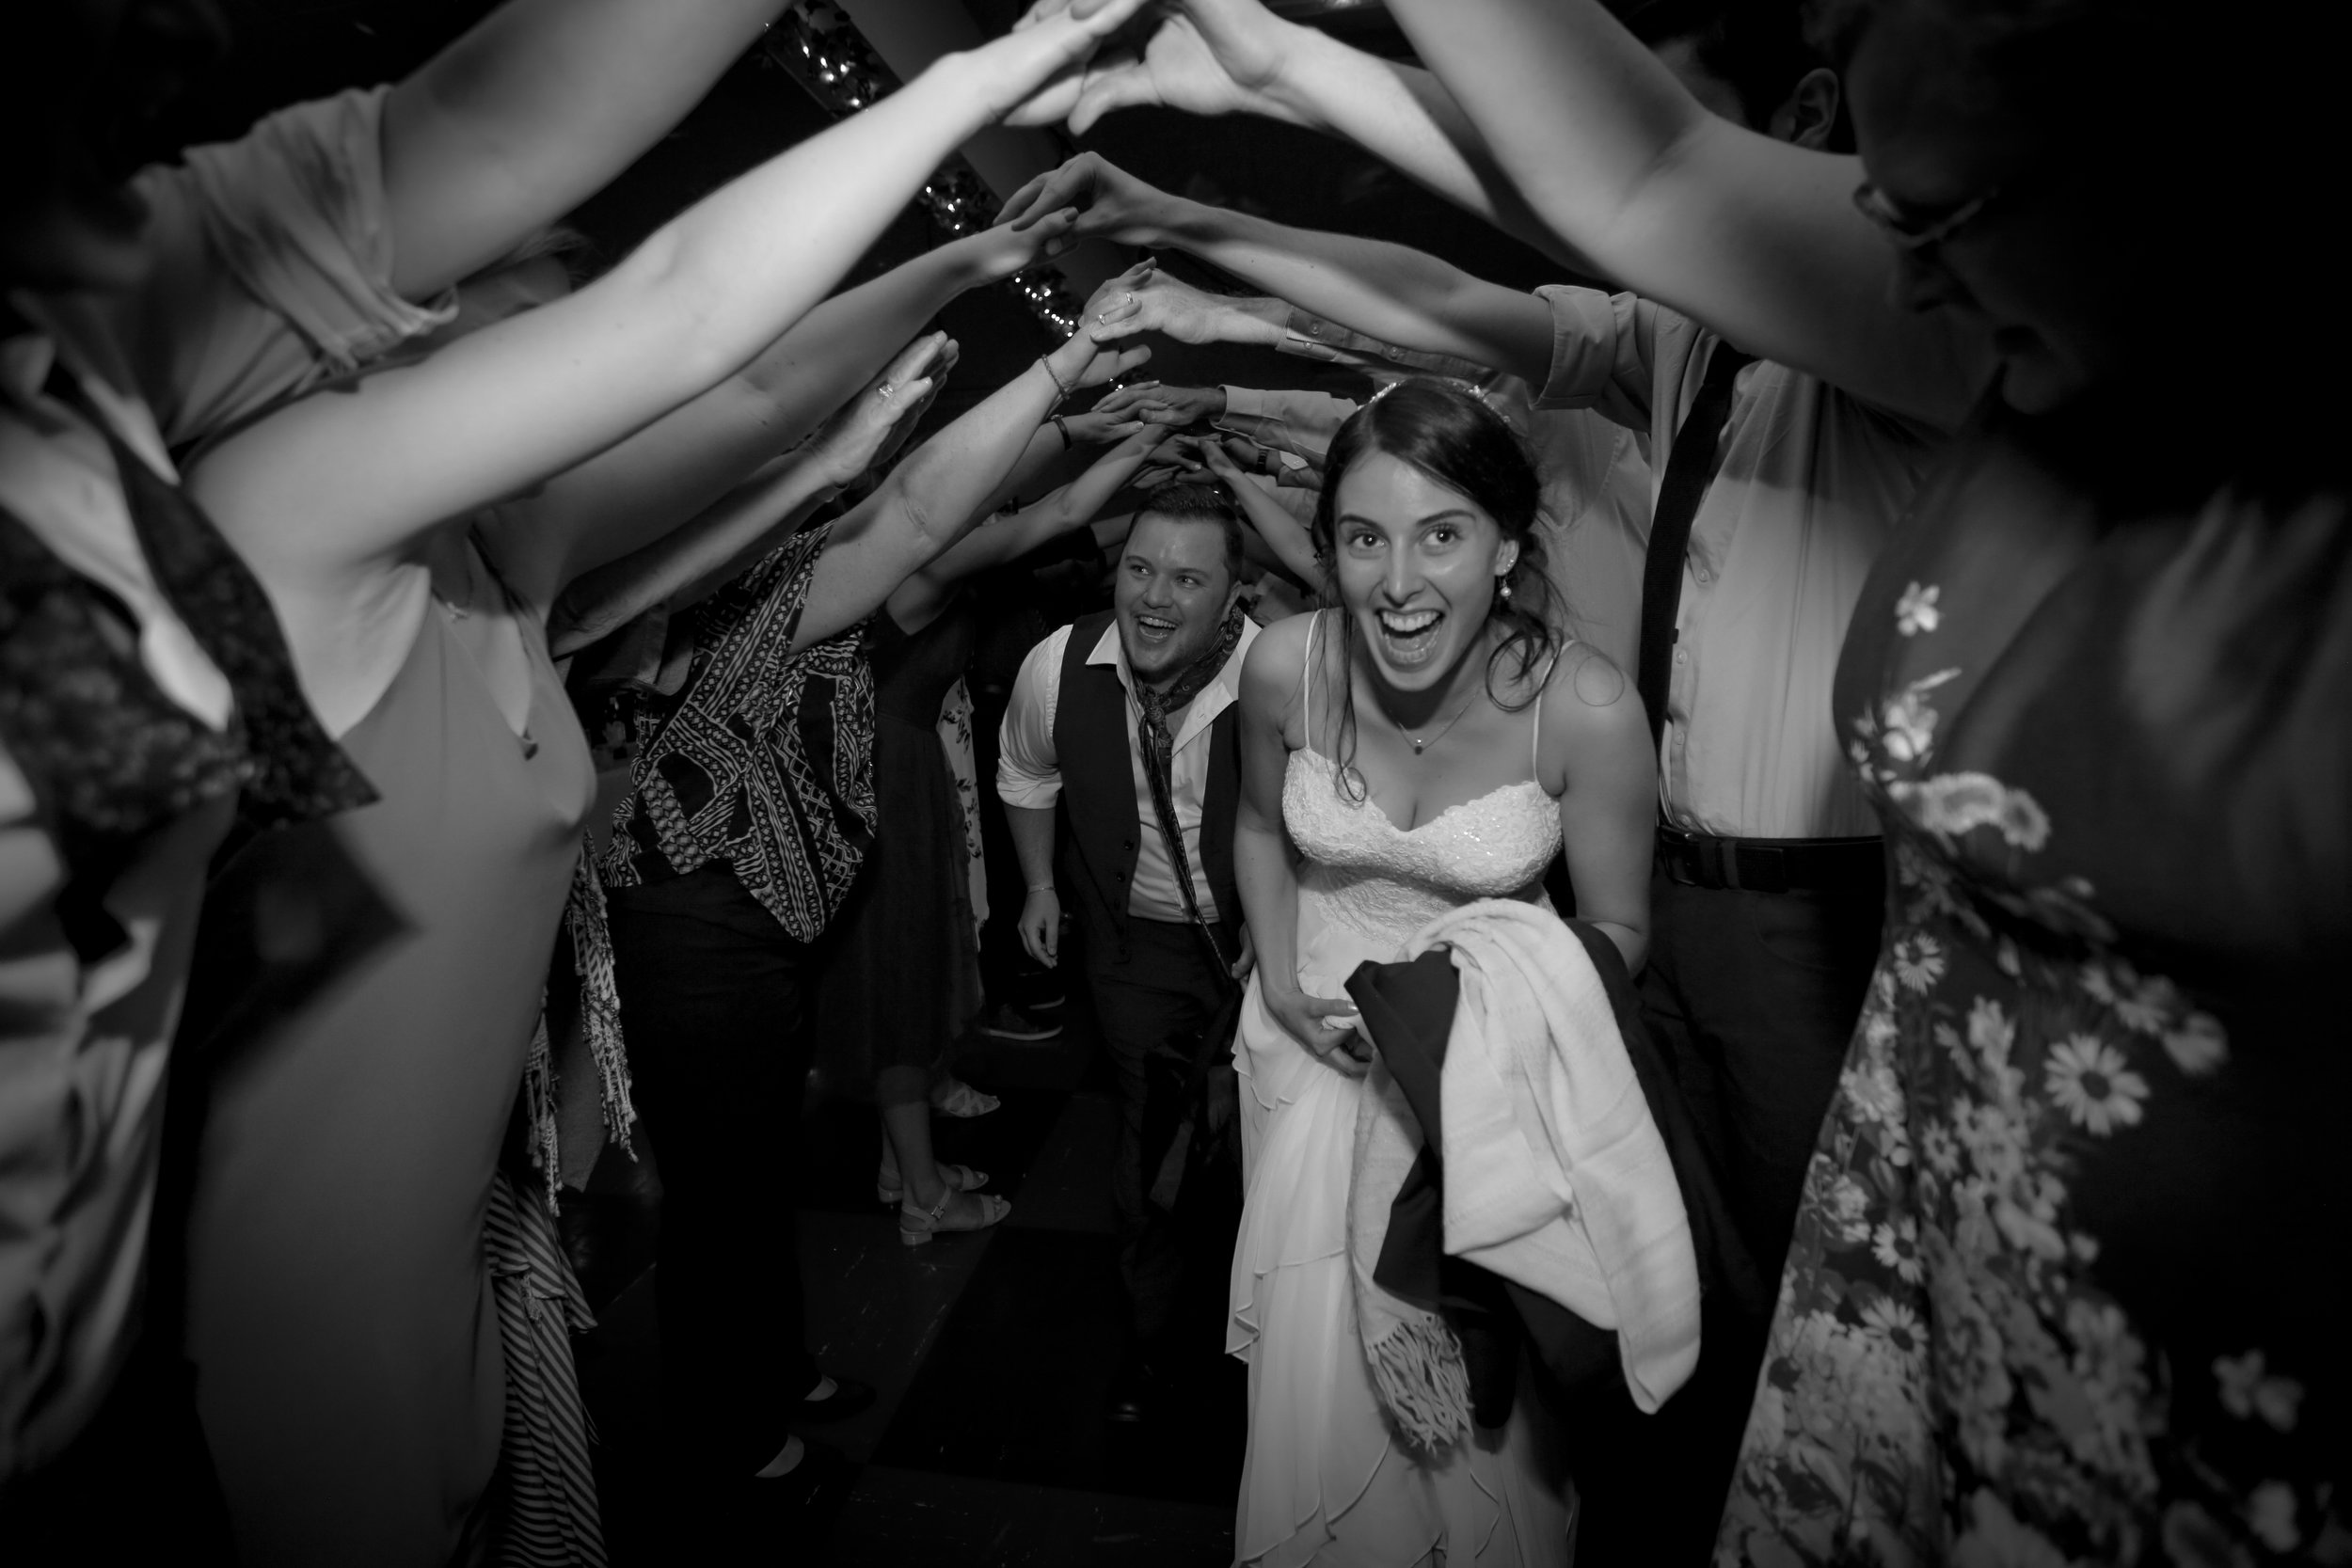 Emily&AaronWedding (569 of 572).jpg